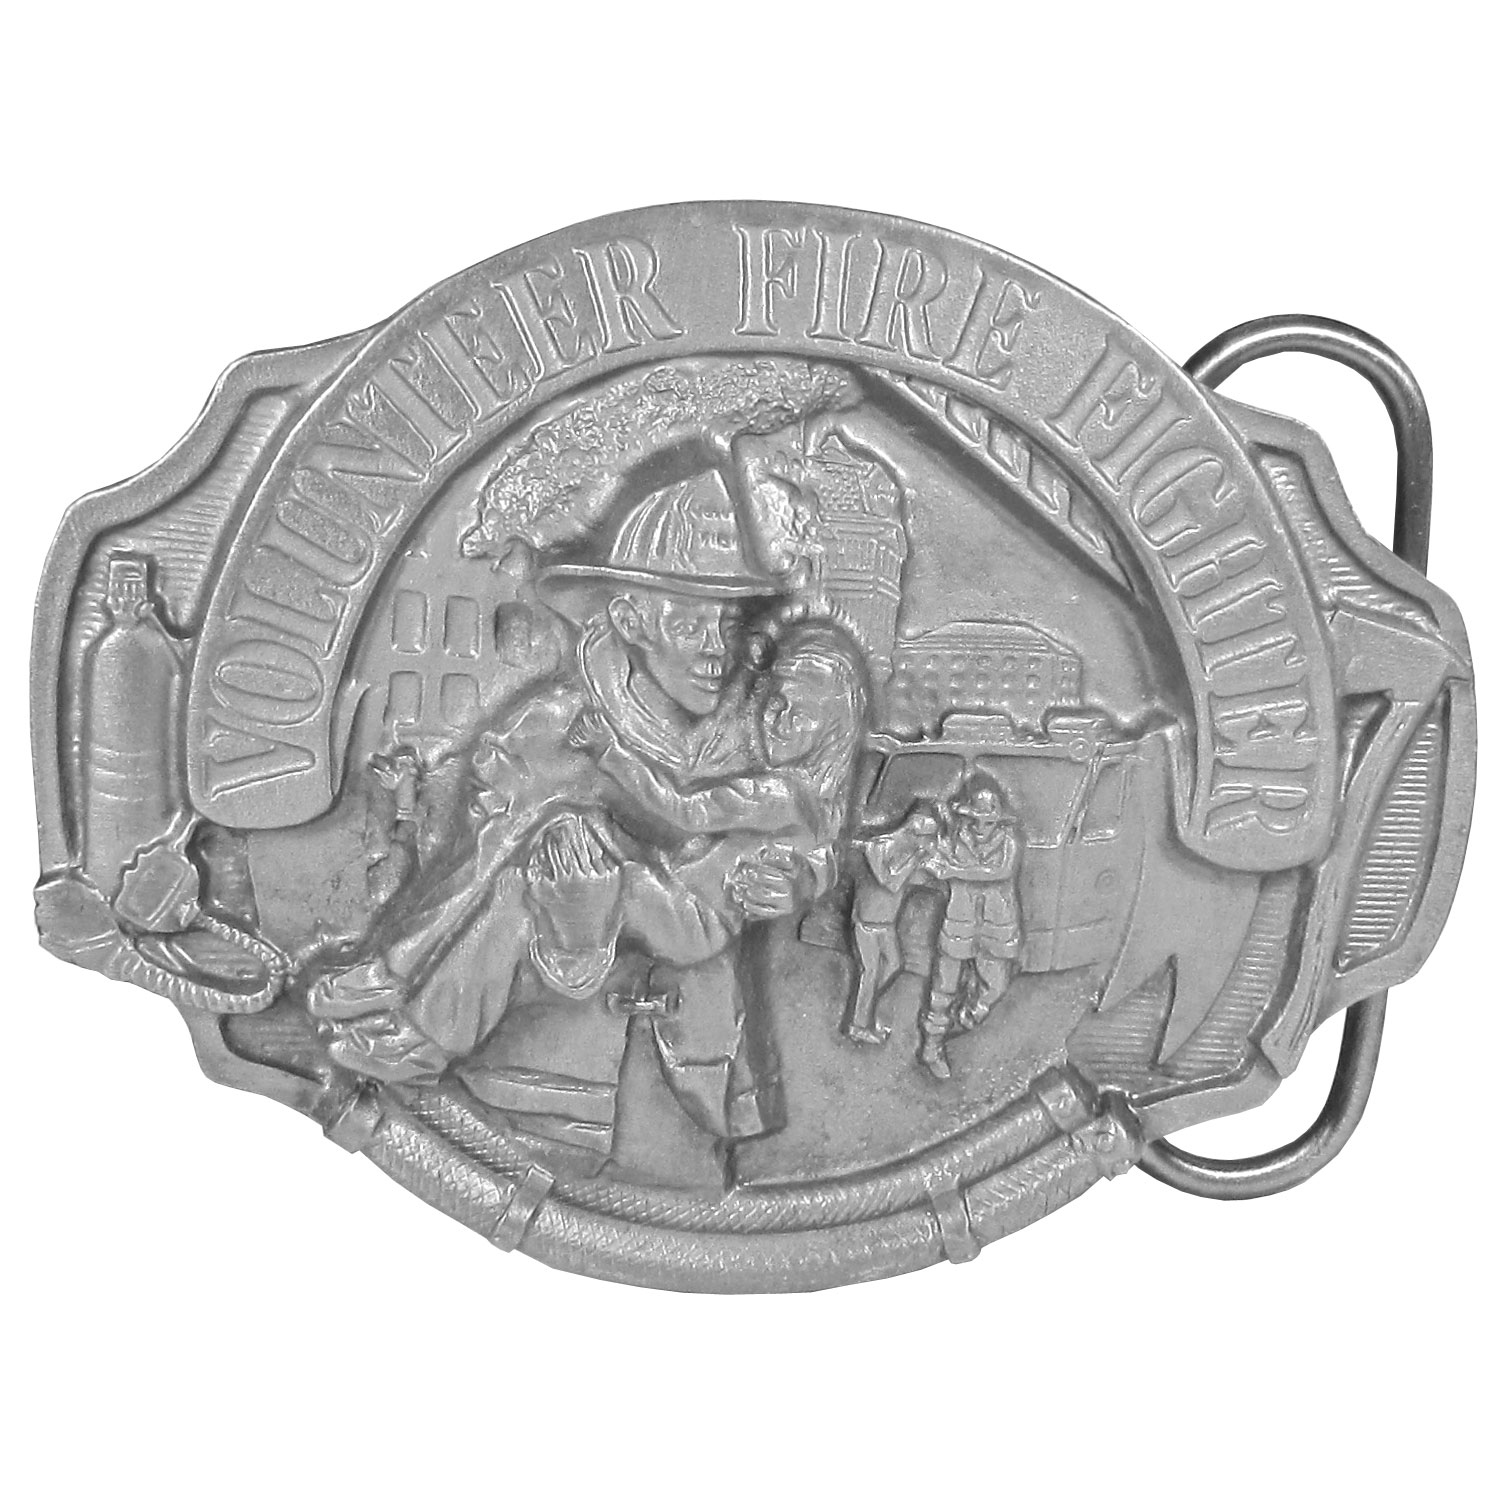 "Volunteer Fire Fighter Antiqued Belt Buckle - This buckle is perfect for the Volunteer Fire Fighter! In the front is a fire fighter carrying a child to safety.  In the background is a burning building, a firetruck, firefighters, a fire hose, pickaxe and an oxygen tank.  Across the top is written ""Volunteer Fire Fighter"" in bold.  This exquisitely carved buckle is made of fully cast metal with a standard bale that fits up to 2"" belts."